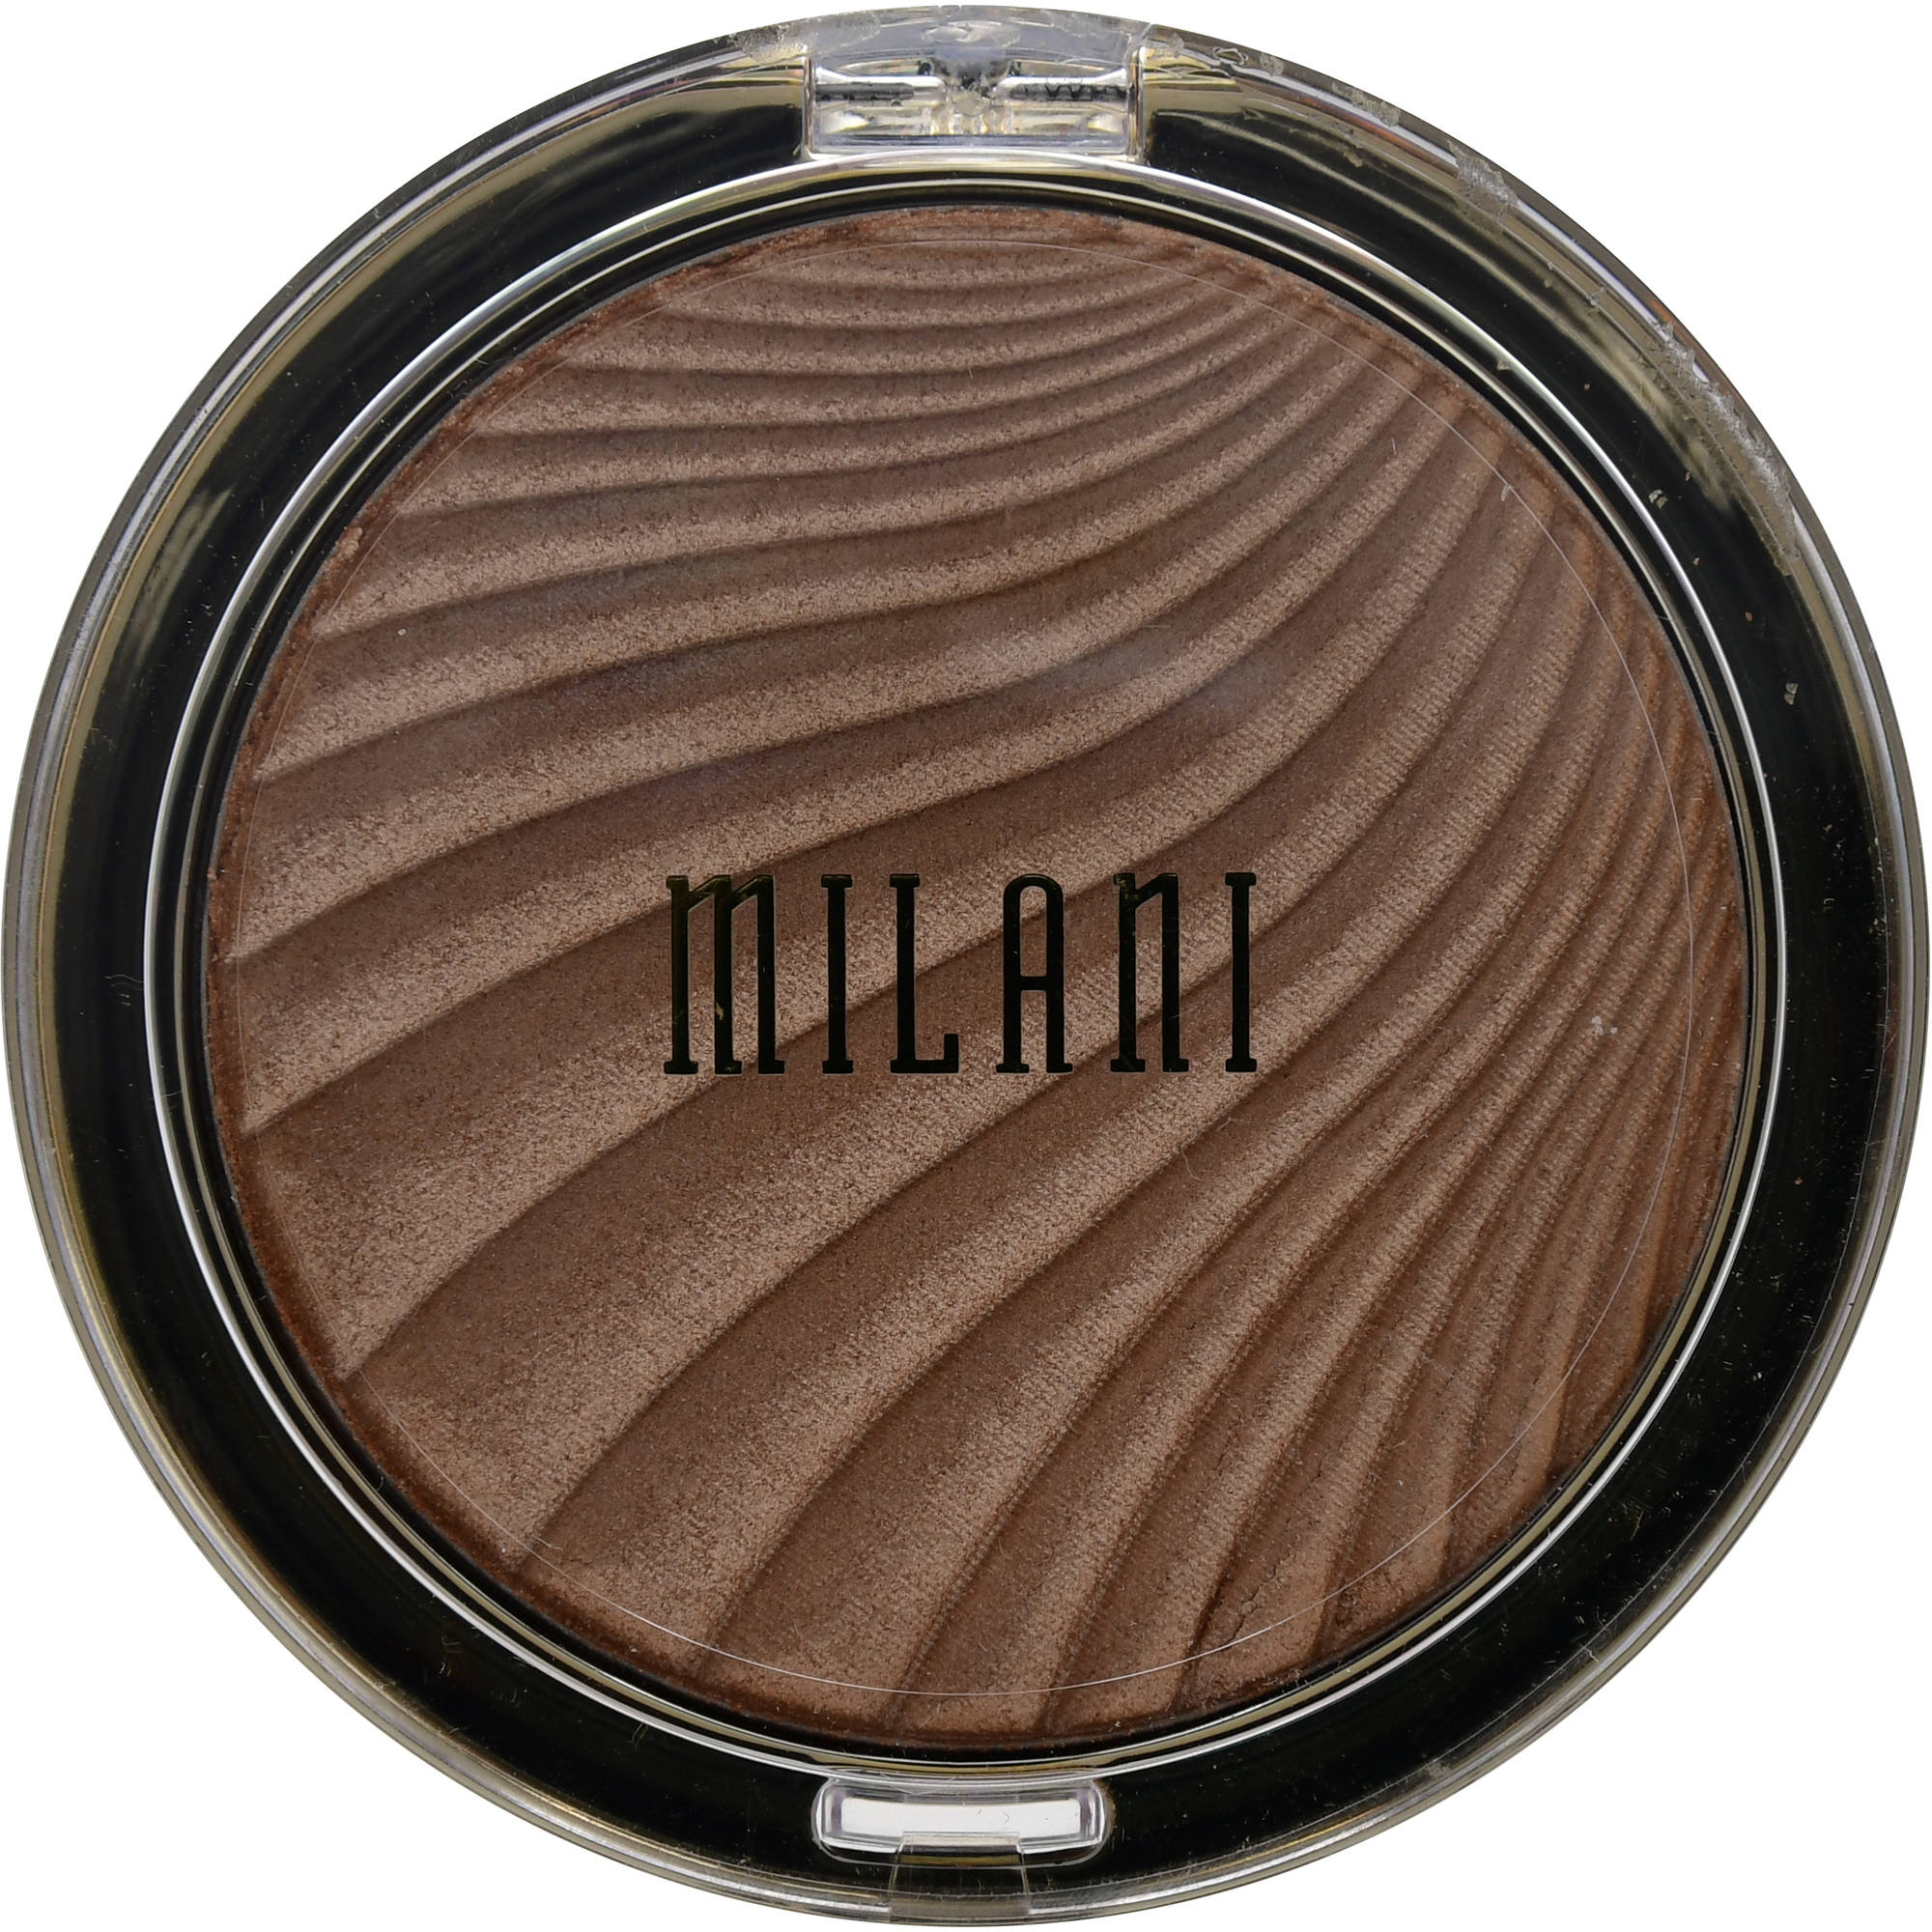 Milani Strobelight Instant Glow Powder-Dayglow